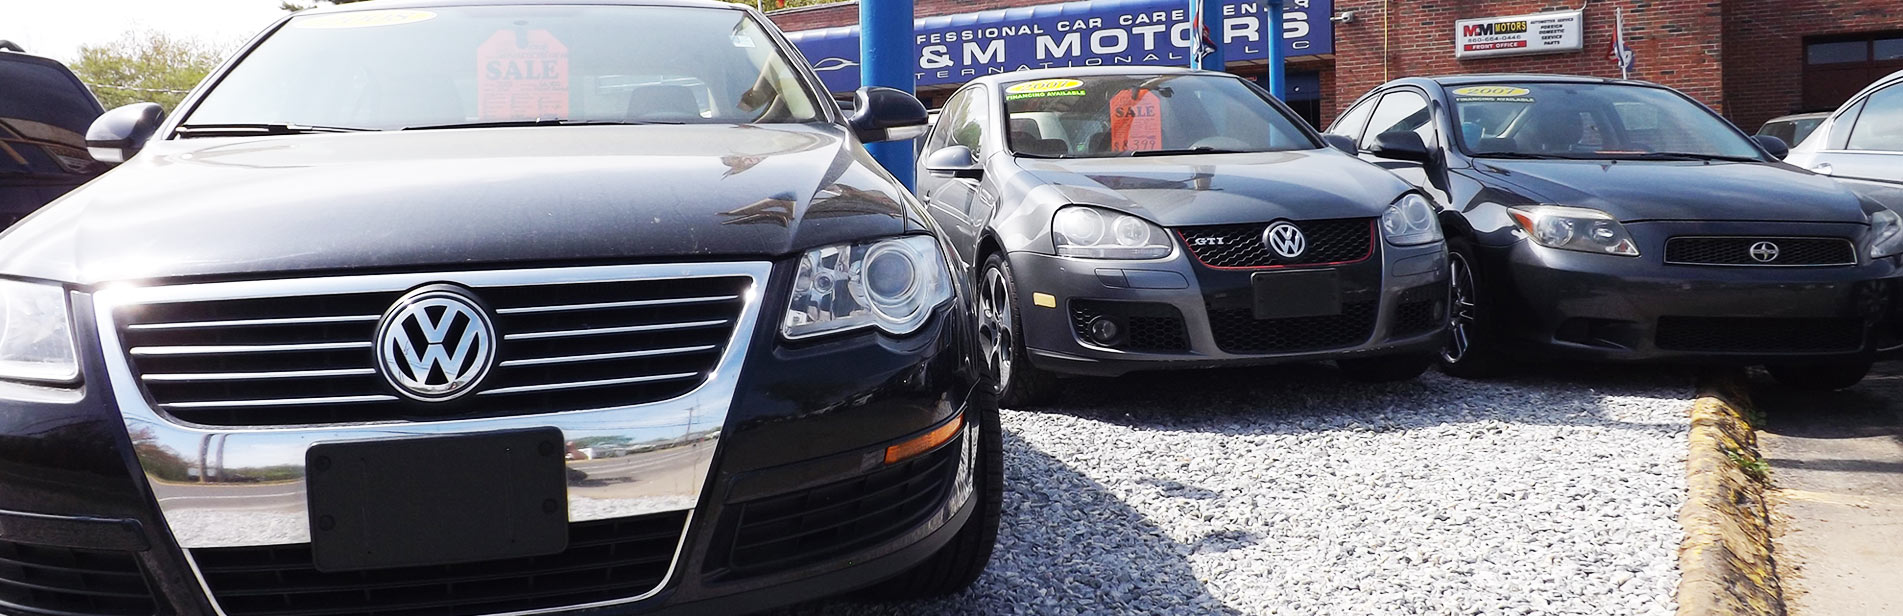 Used cars for sale in Clinton | M&M Motors International. Clinton CT